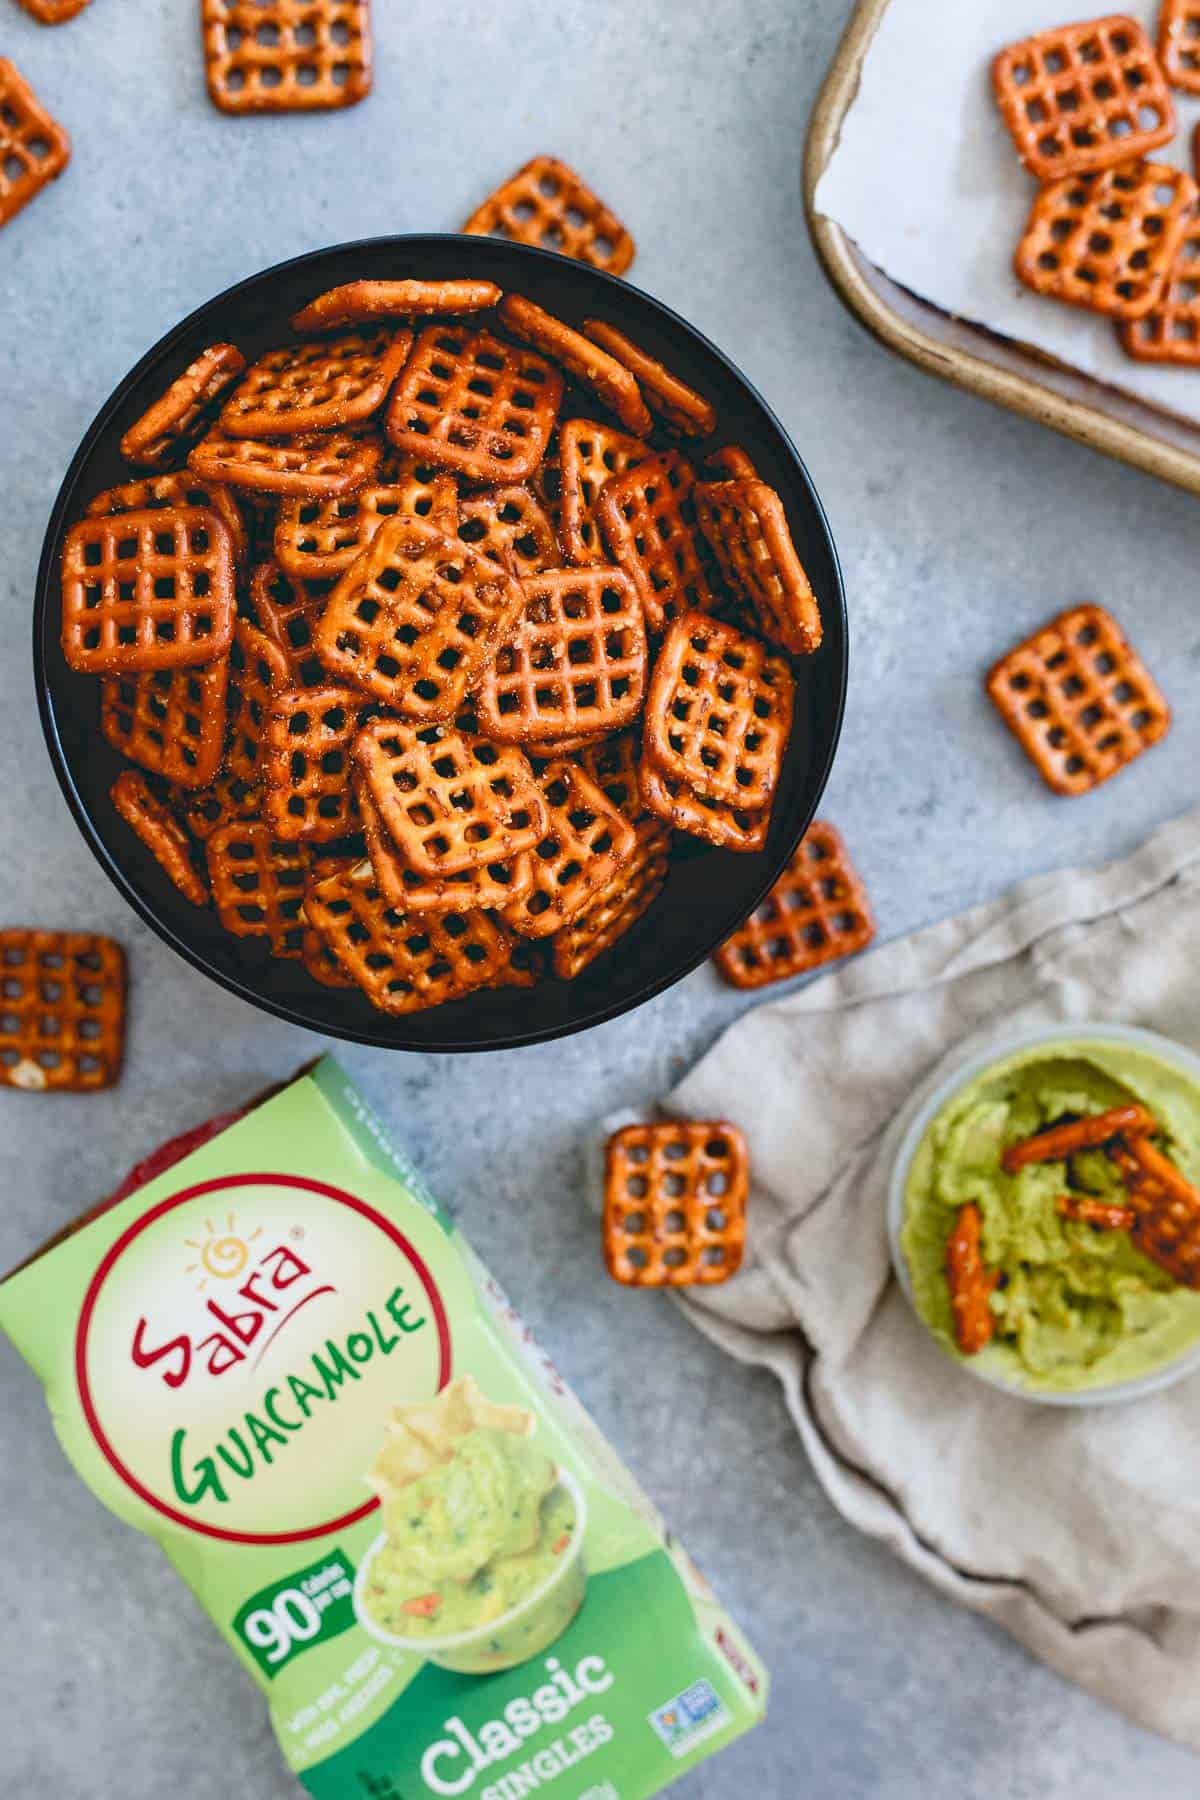 Spicy seasoned pretzels are like the best part of Chex mix in a bowl. Adjust to your taste and dip in some guacamole for an easy homemade snack!